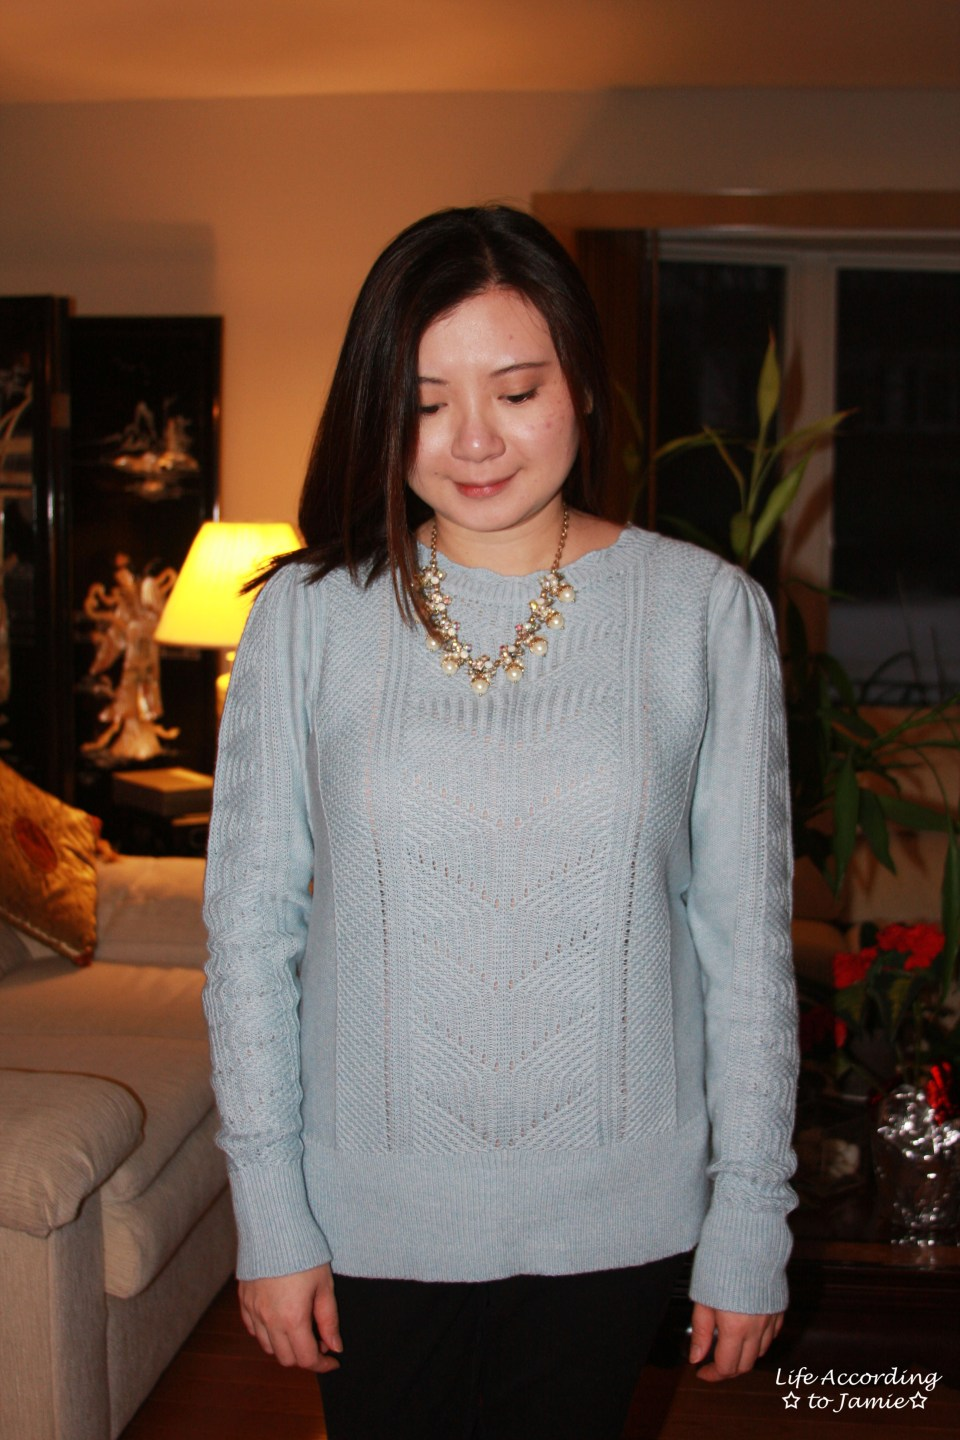 Mixed Chevron Sweater + Pearl Statement Necklace 12